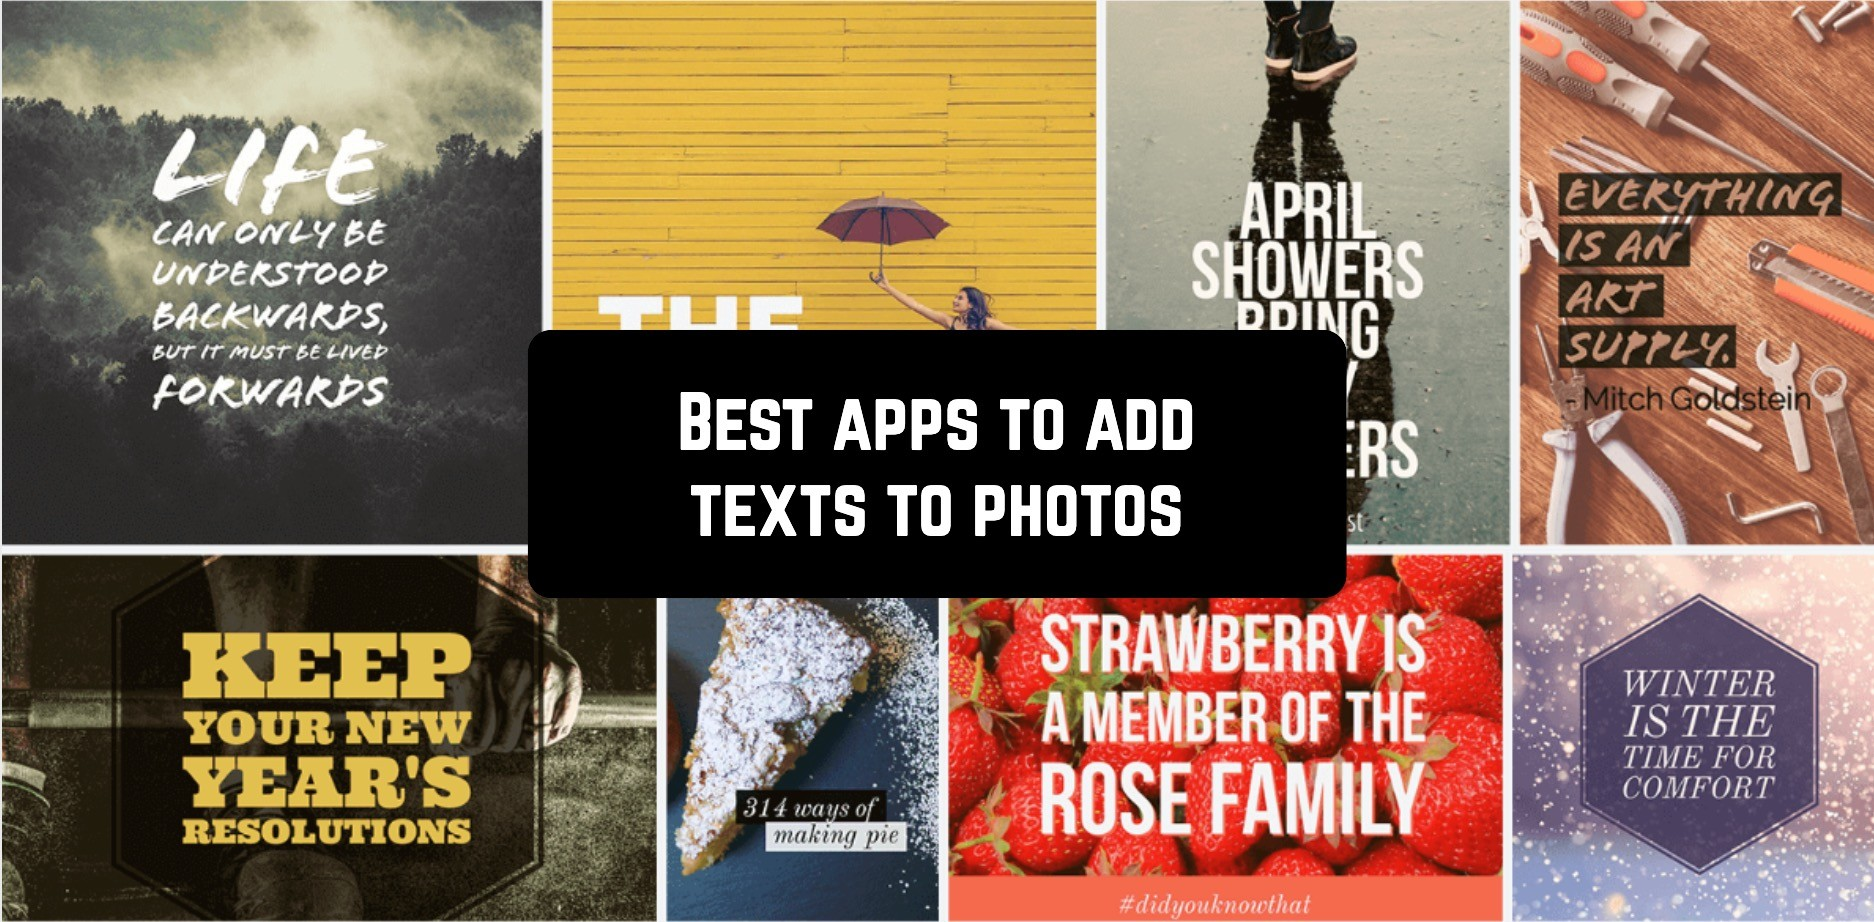 Best apps to add texts to photos